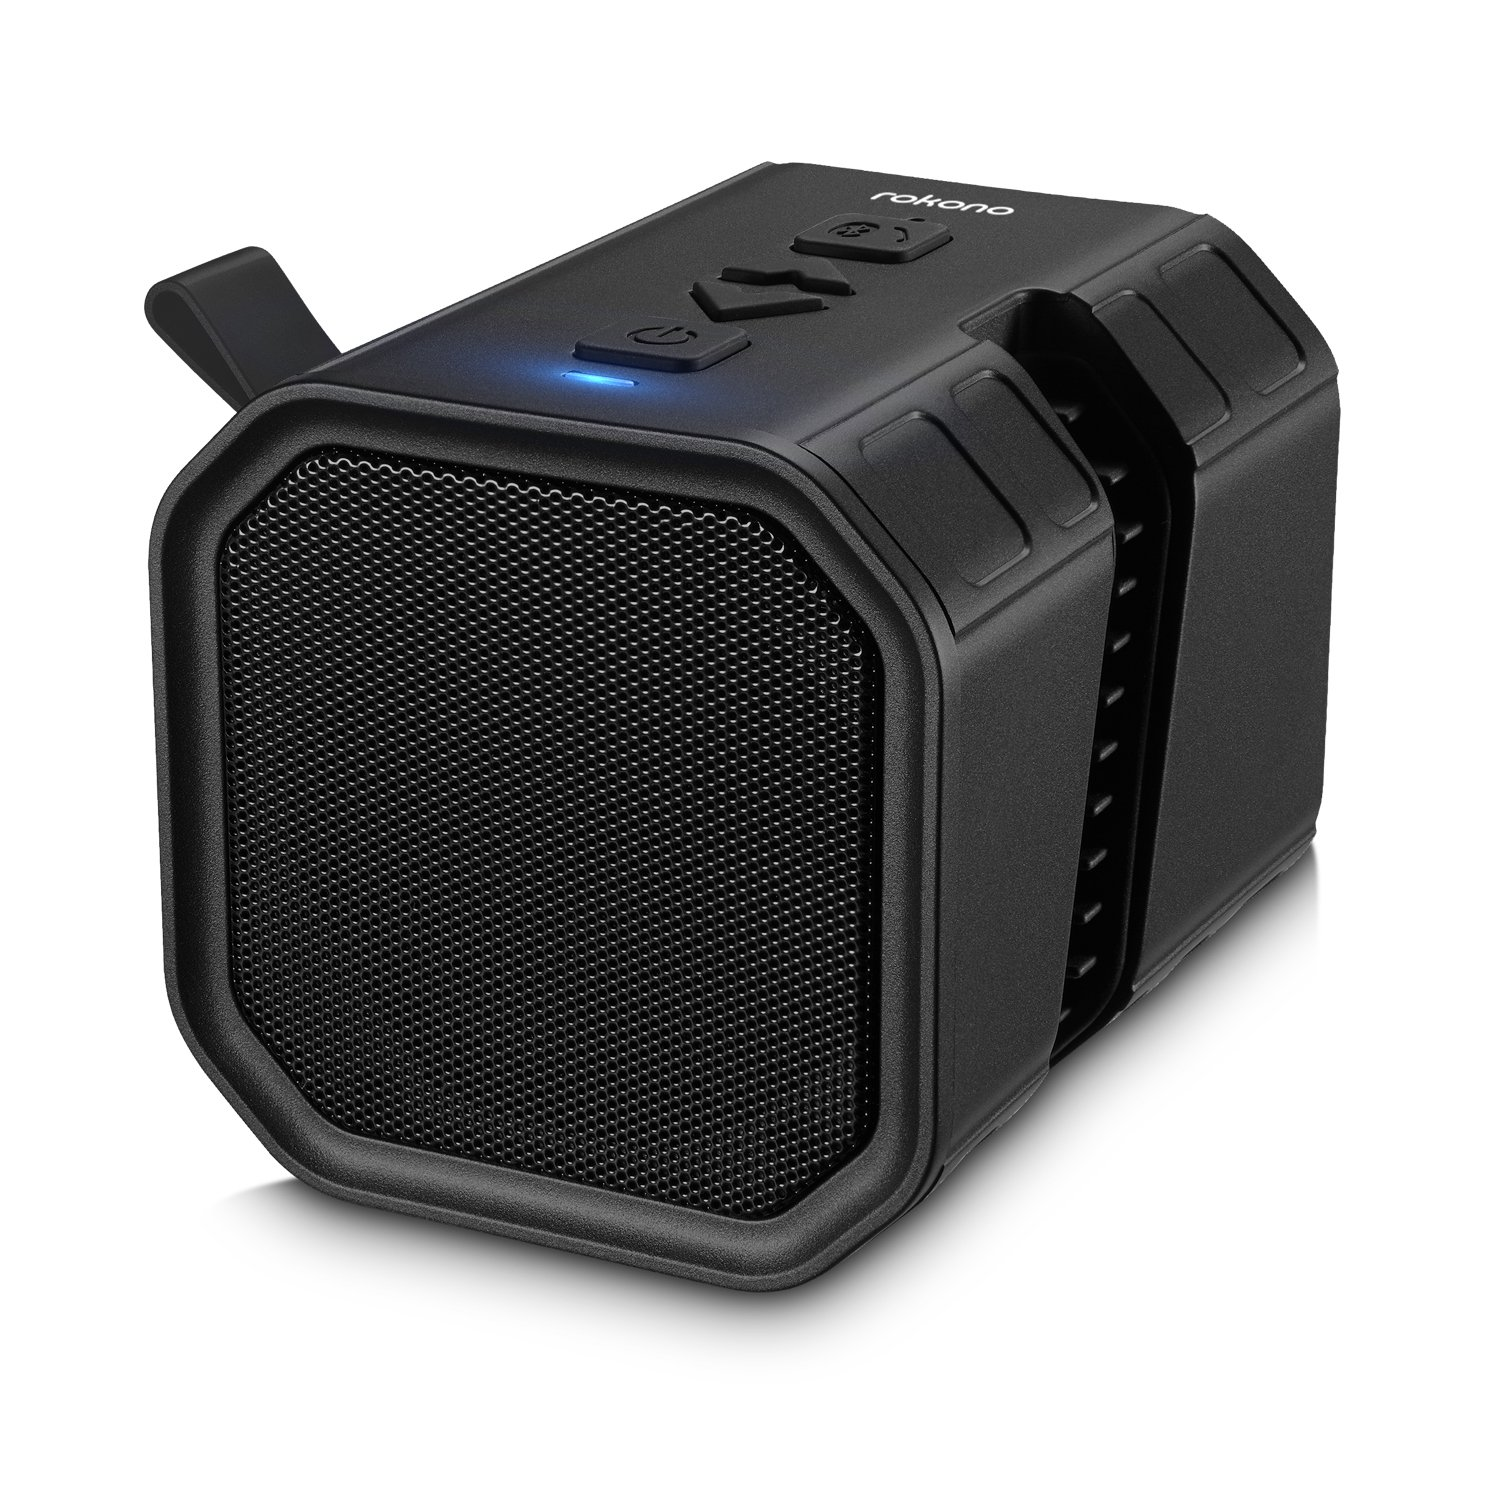 Rokono BASS+ (Sidewinder) Bluetooth Speaker with Cell Phone Holder Grip for iPhone/Samsung - Black